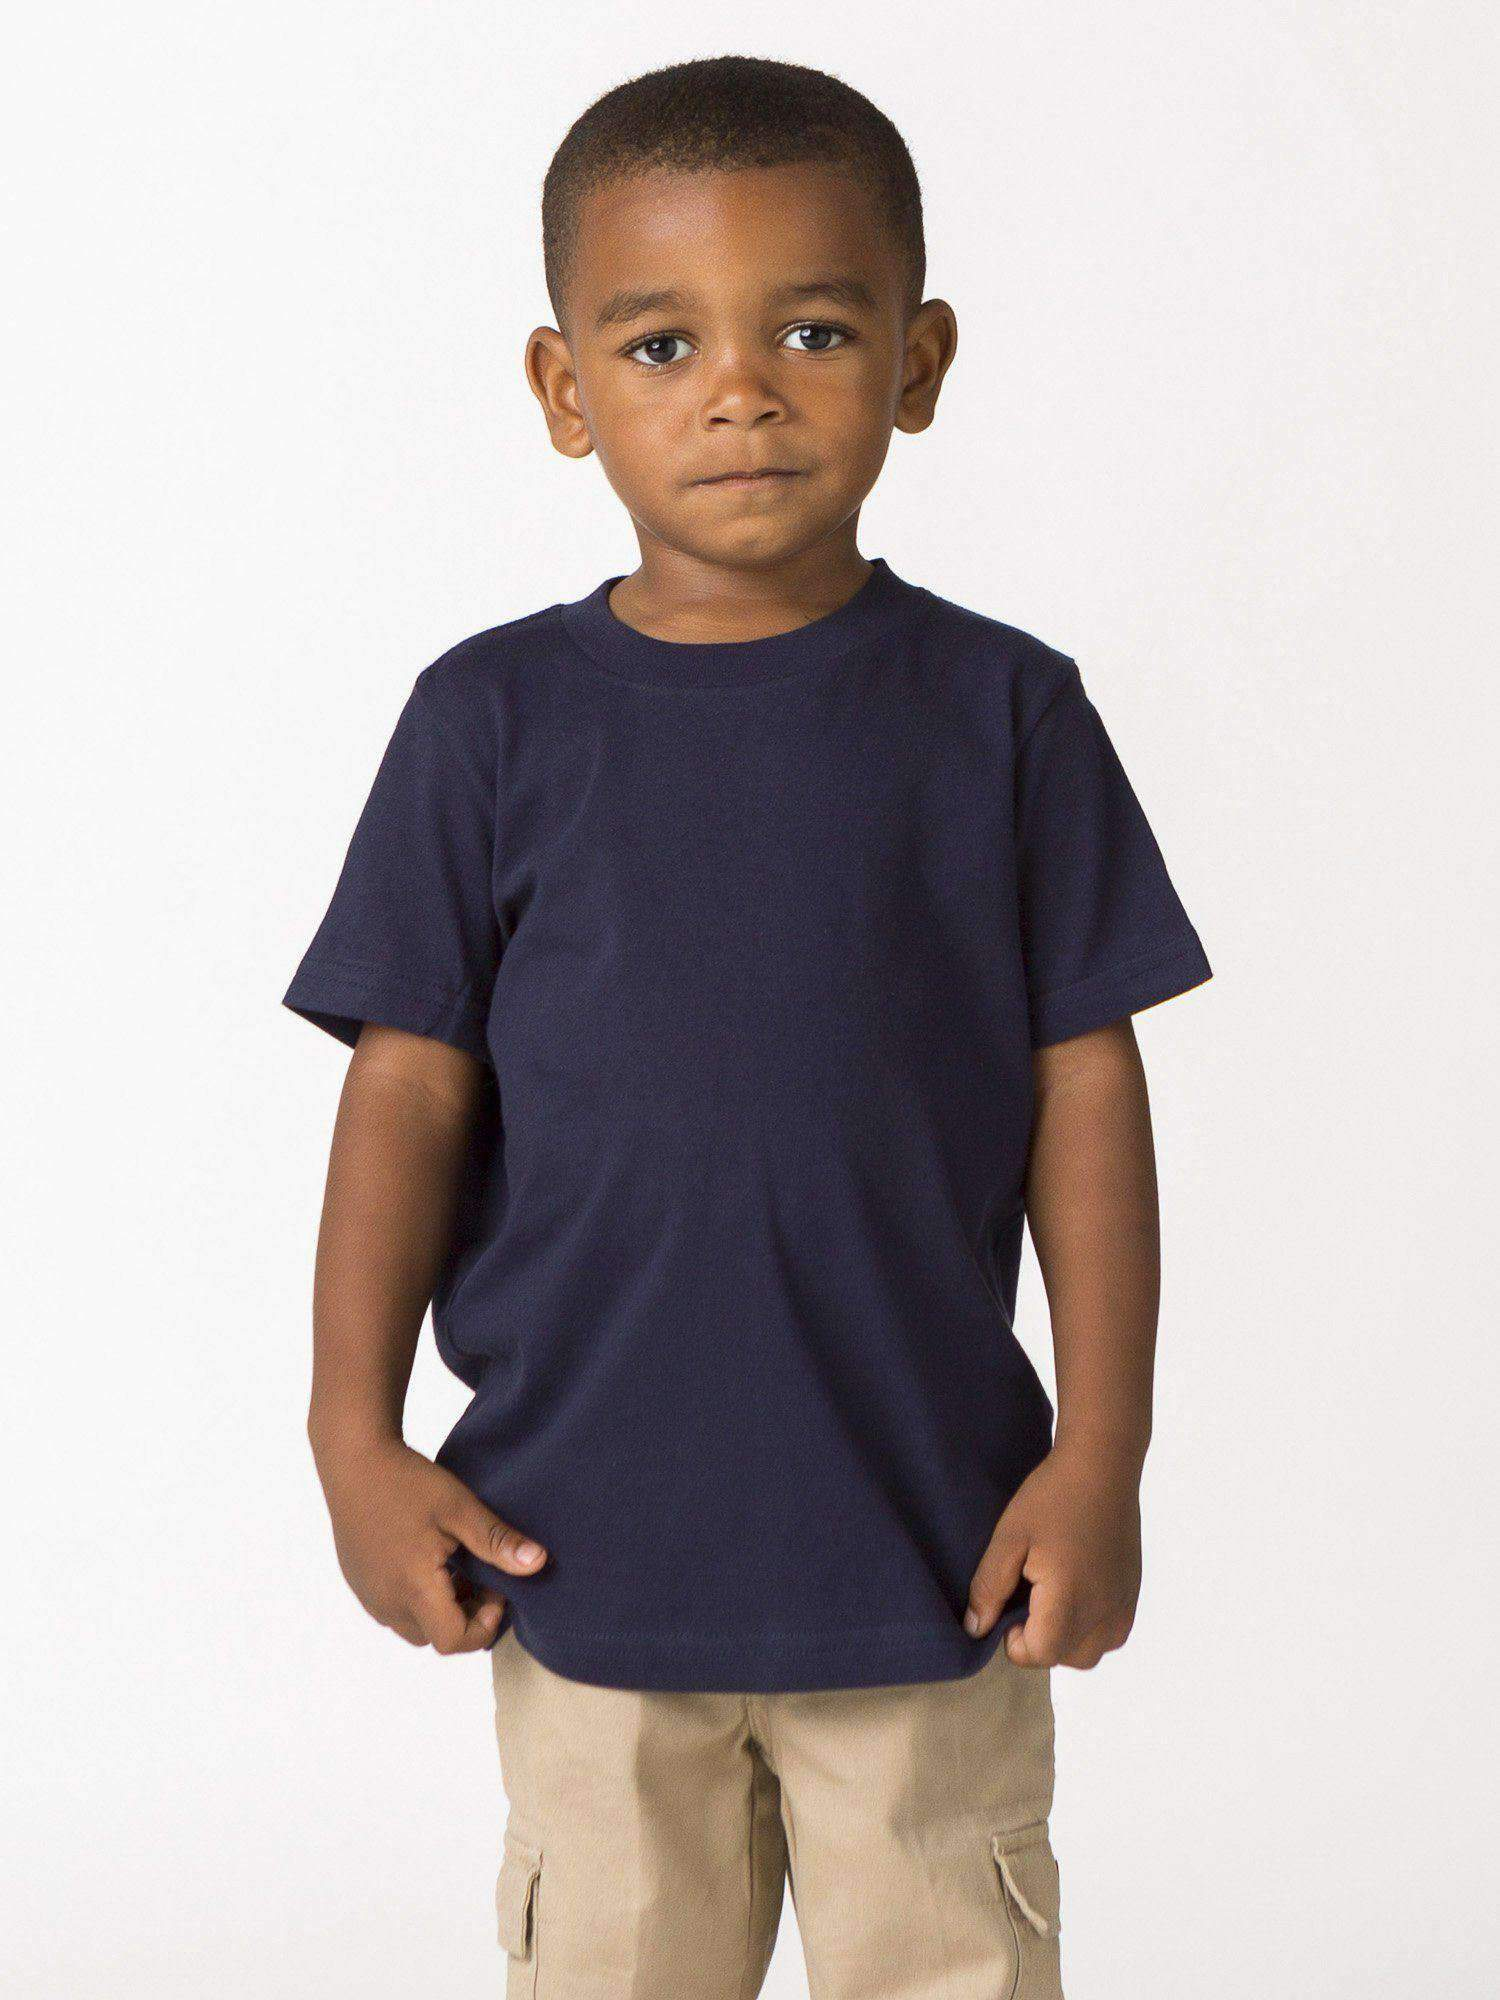 21005 - Toddler Short Sleeve Fine Jersey Tee Kids Los Angeles Apparel Navy 2